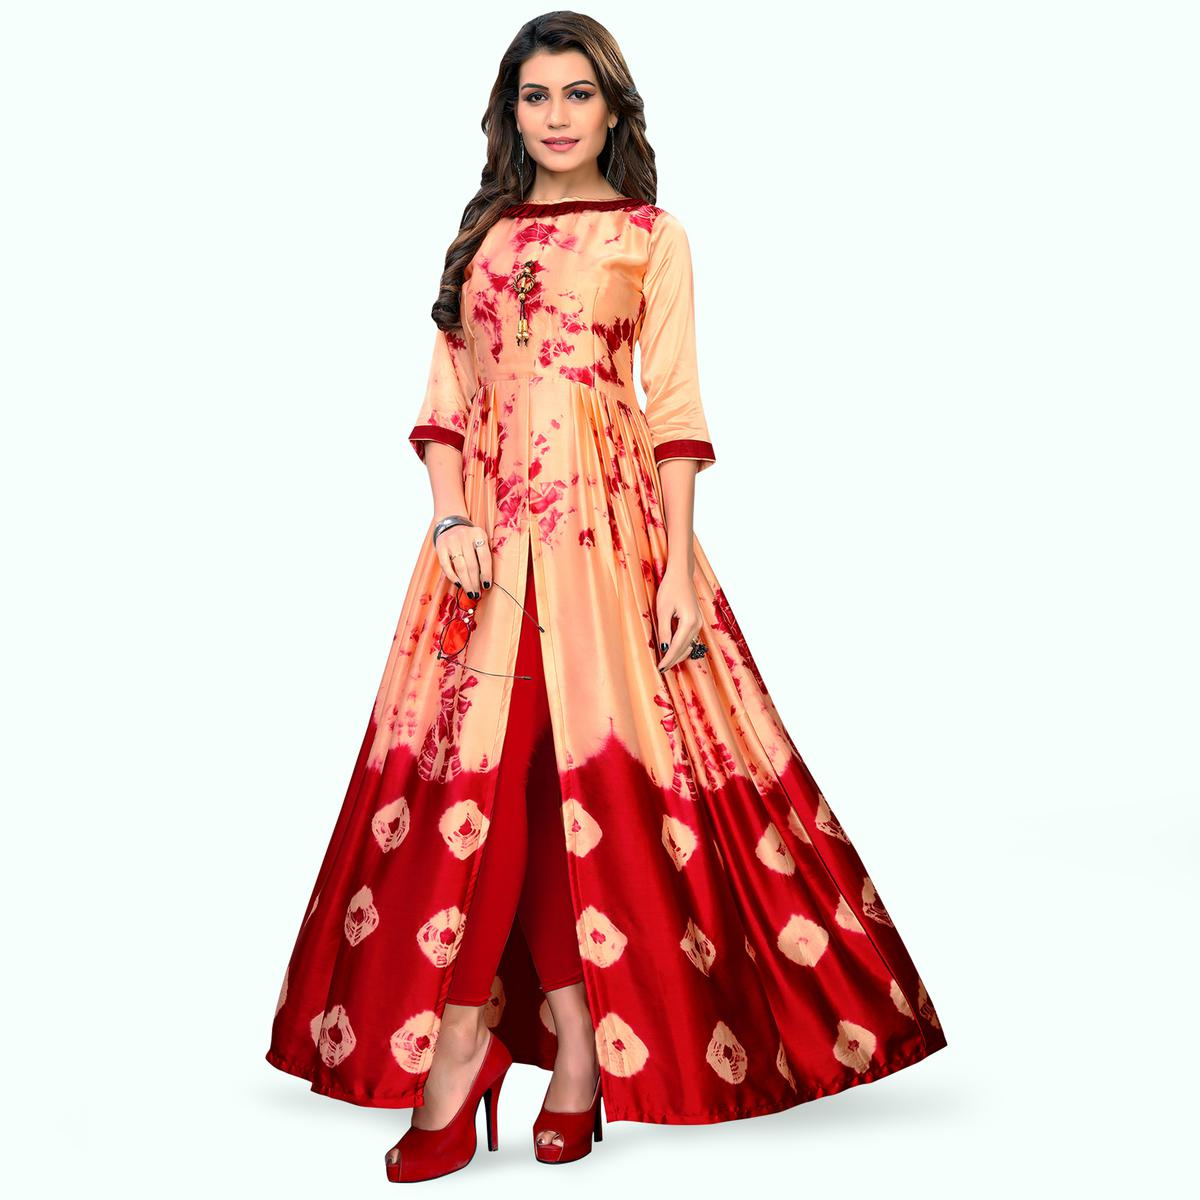 Desiring Peach-Red Colored Partywear Shibori Printed Satin Long Kurti